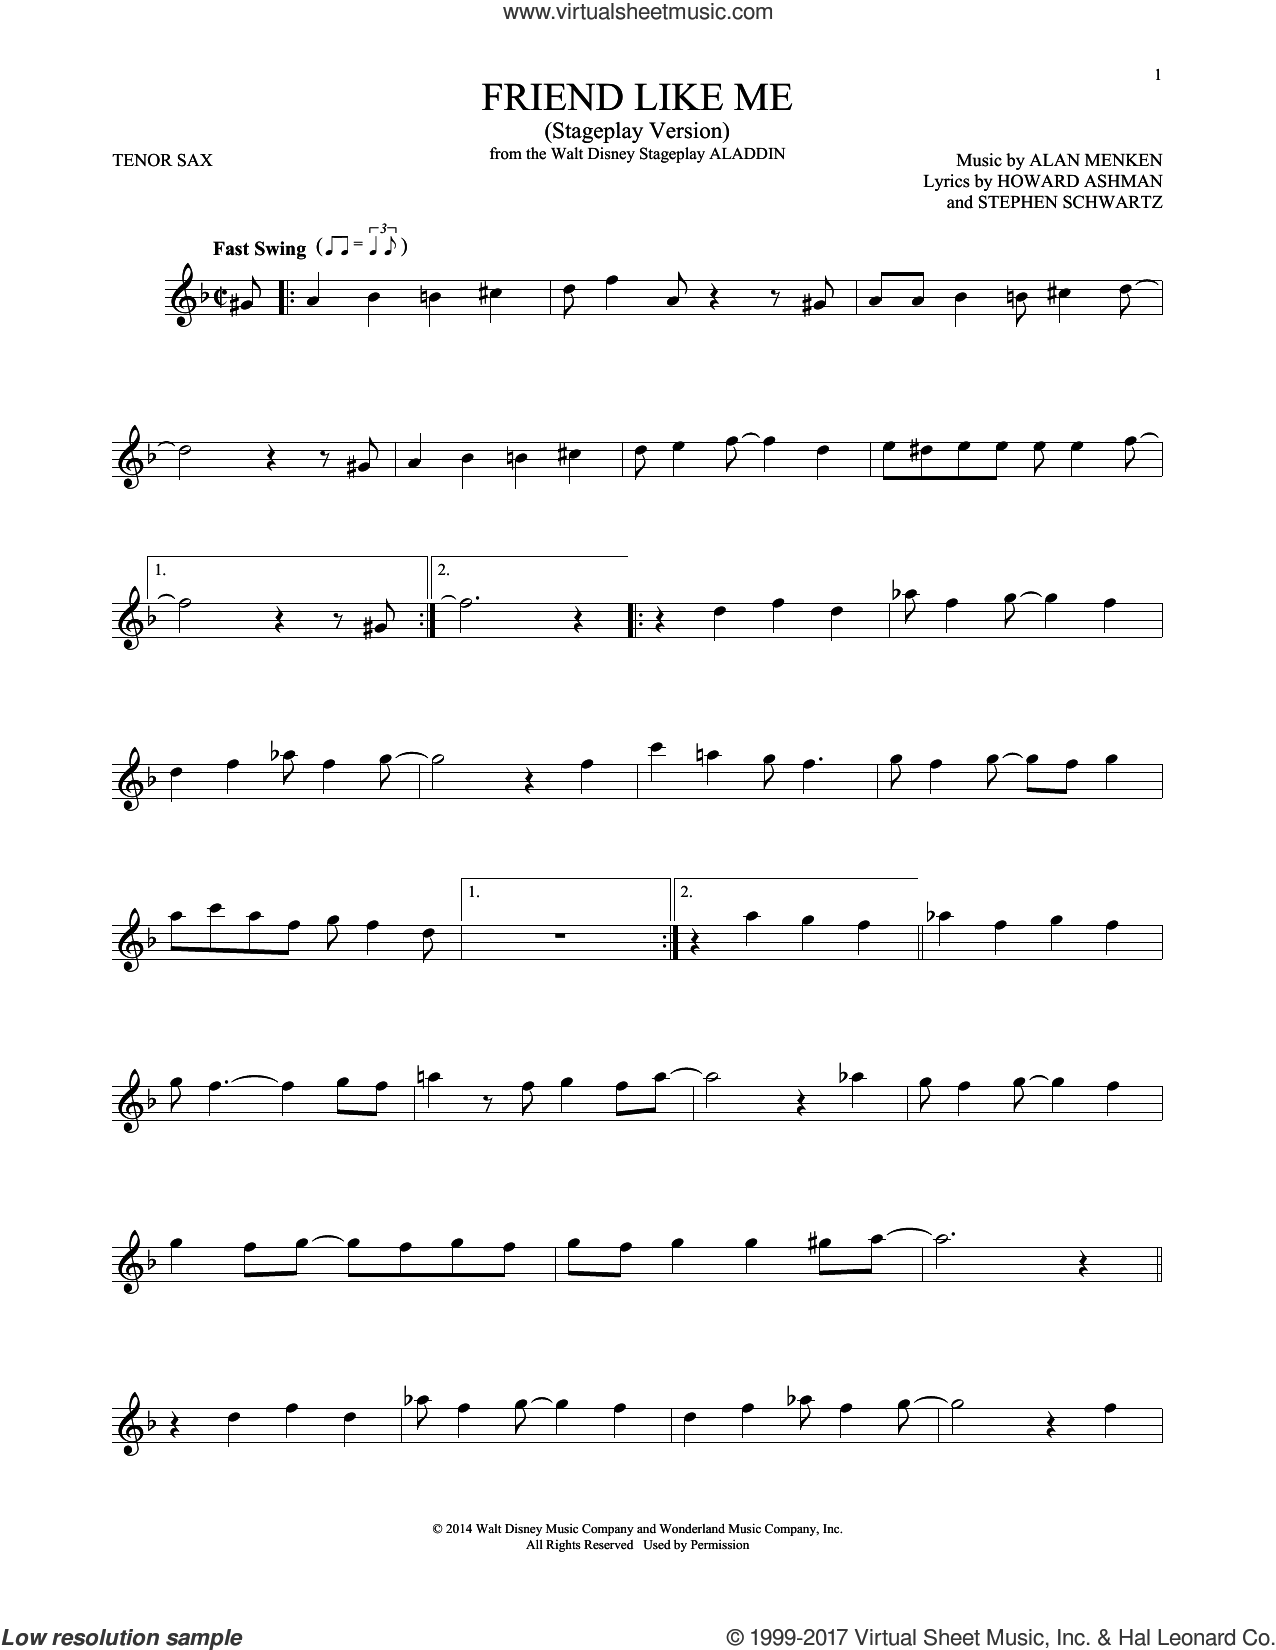 Friend Like Me (Stageplay Version) sheet music for tenor saxophone solo by Alan Menken, Howard Ashman and Stephen Schwartz, intermediate skill level